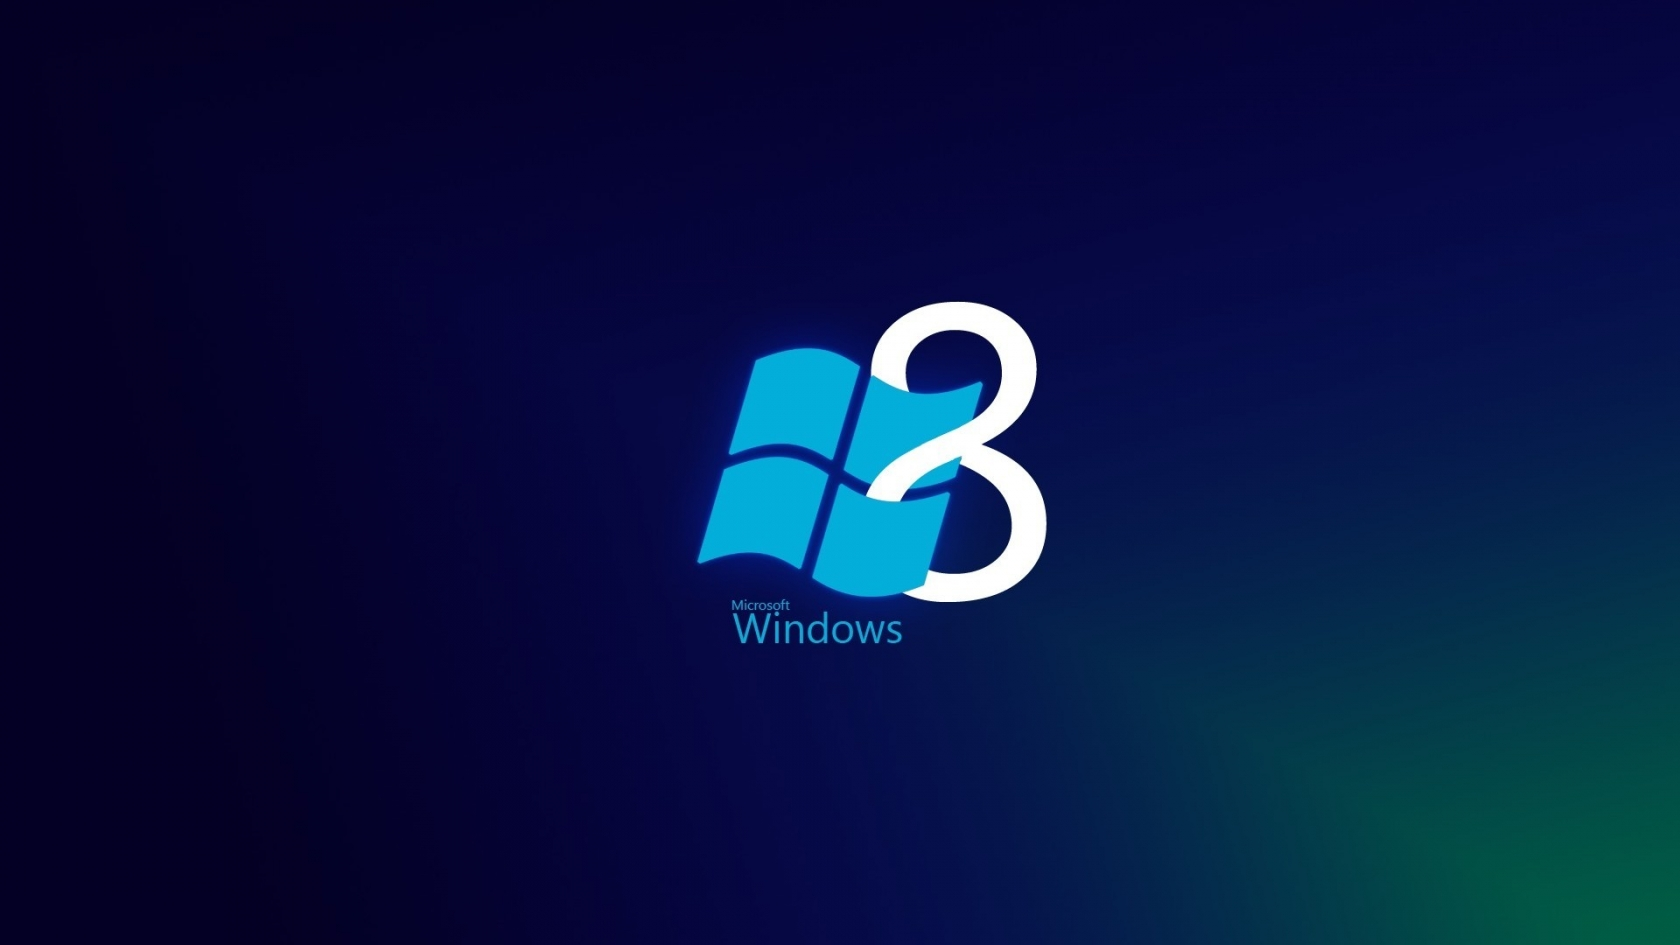 Windows 8 Blue Style for 1680 x 945 HDTV resolution